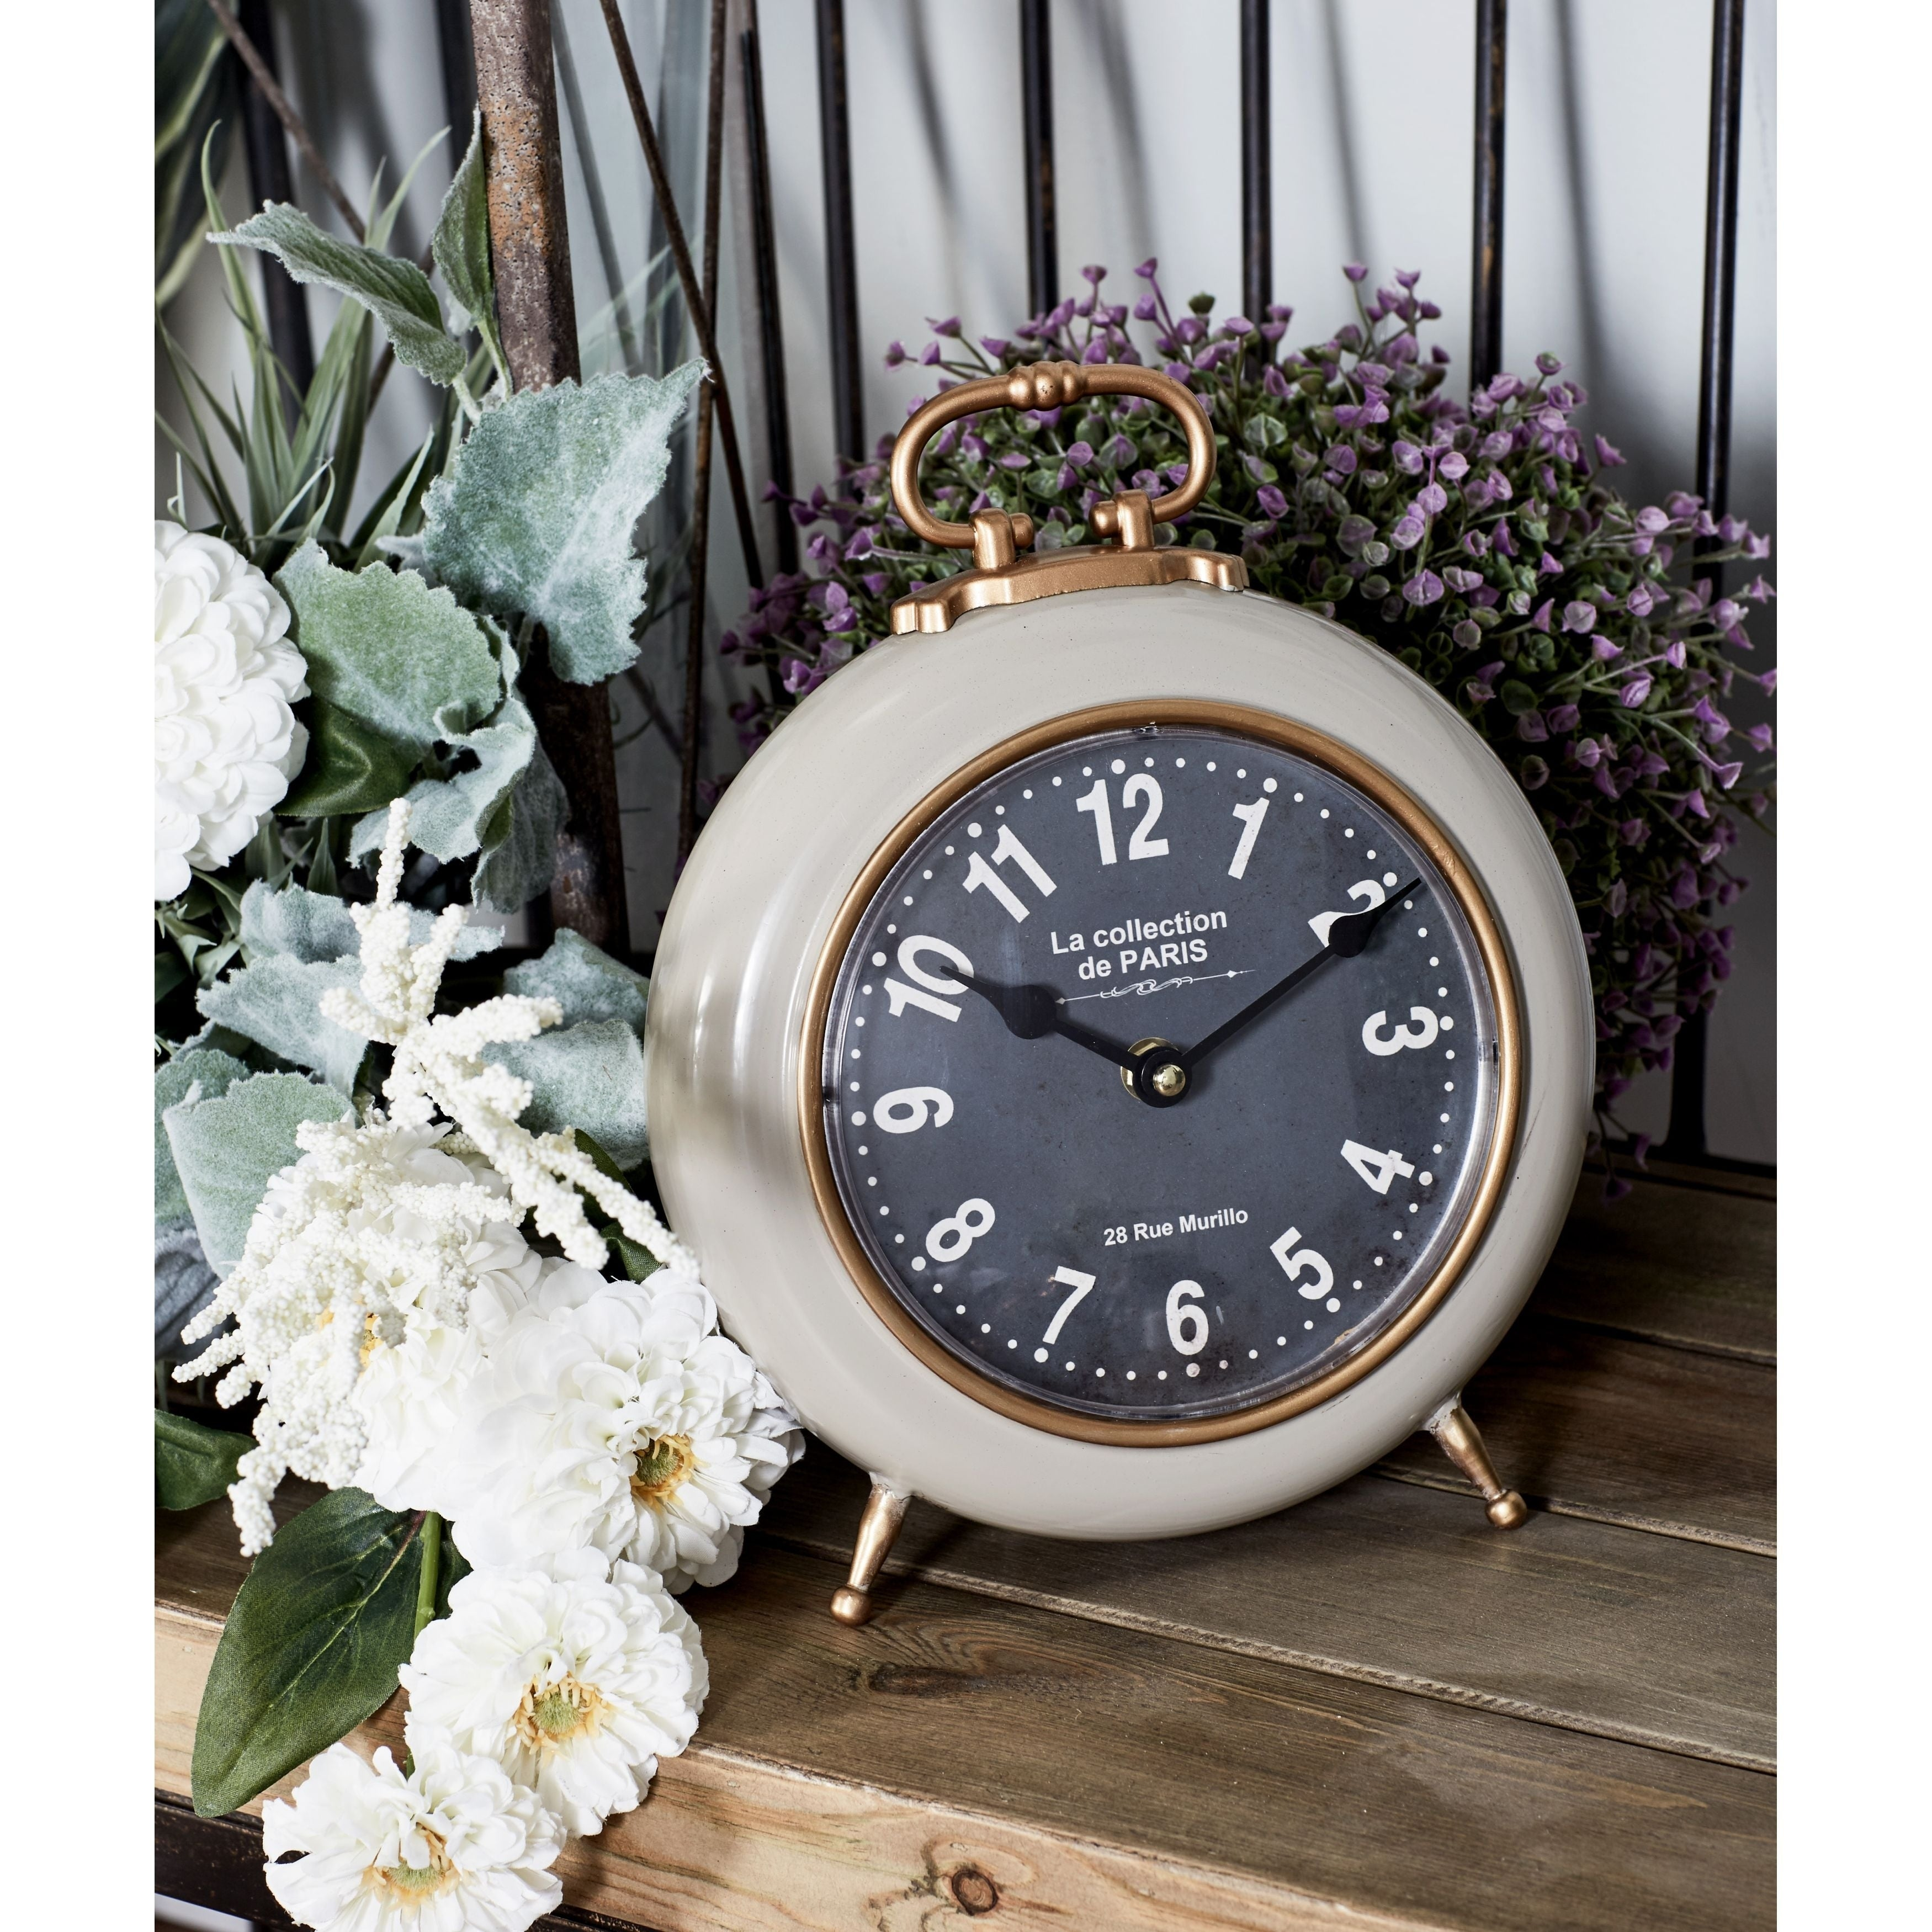 Set Of 3 Contemporary Colored Iron Round Decorative Table Clocks   Free  Shipping Today   Overstock   25551625